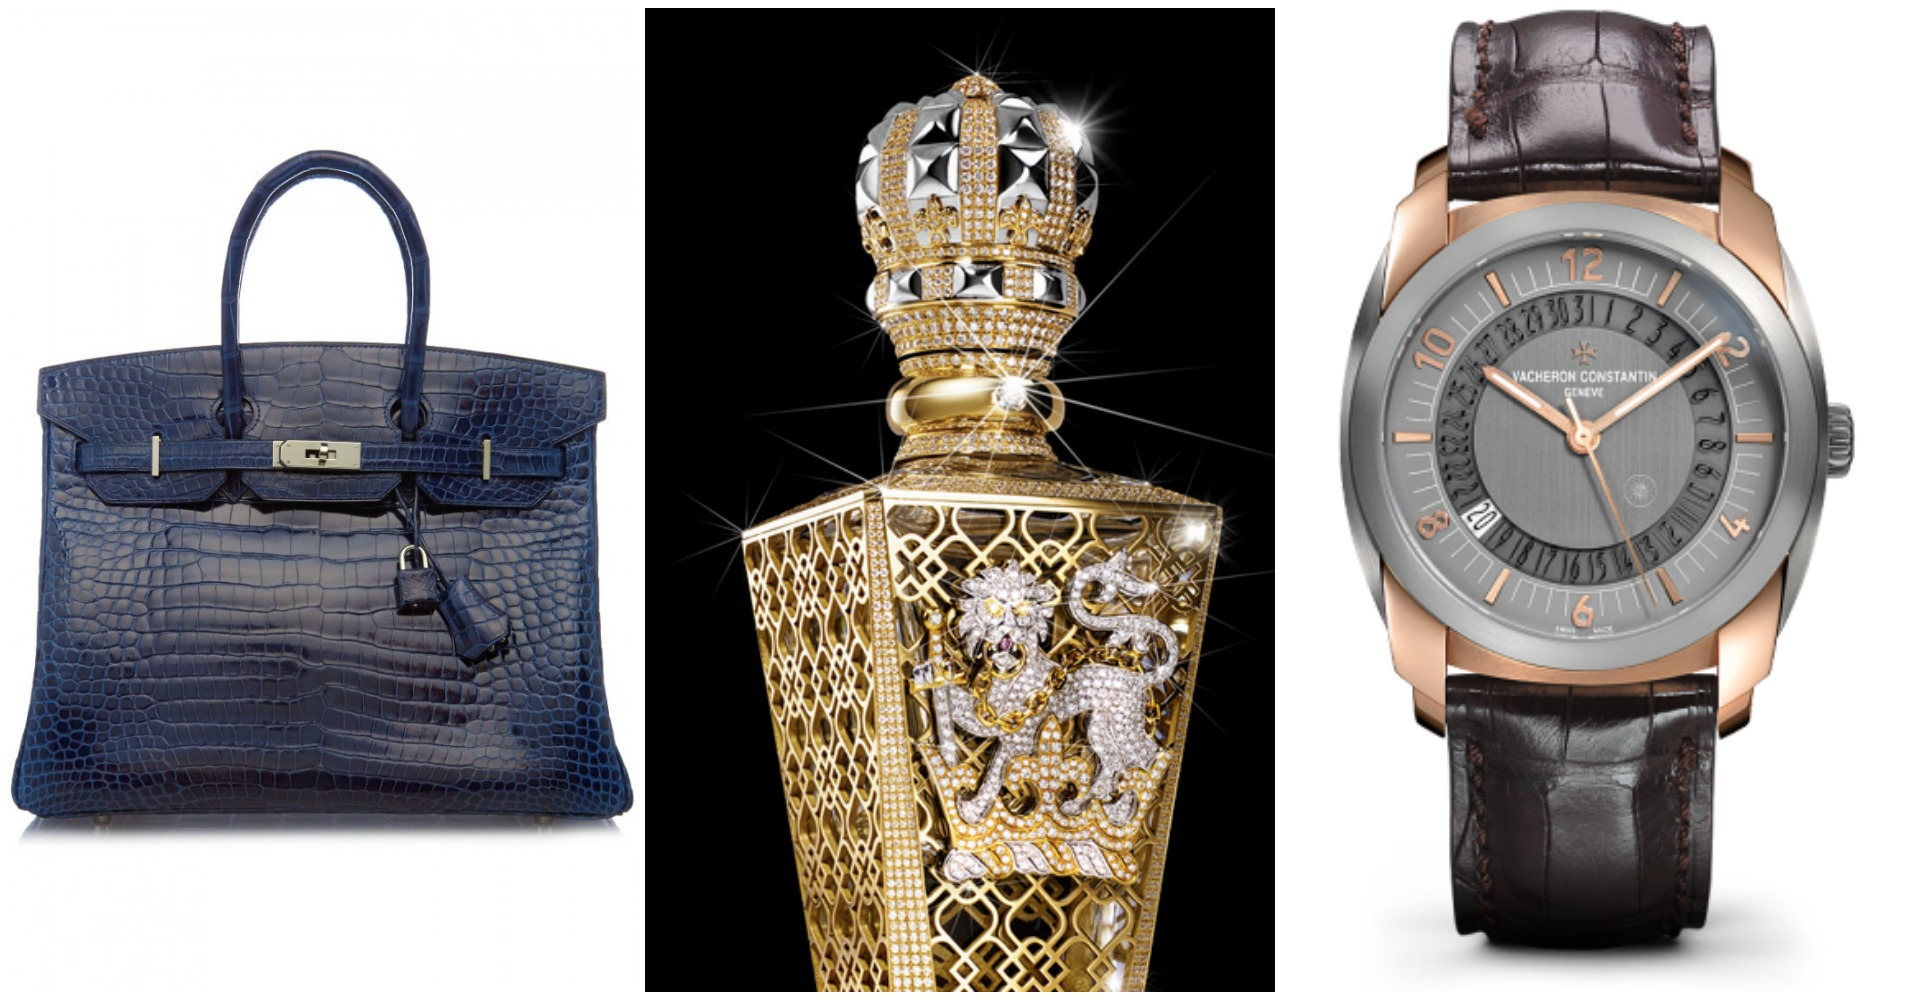 These are some of the most expensive Valentine's gifts in the world